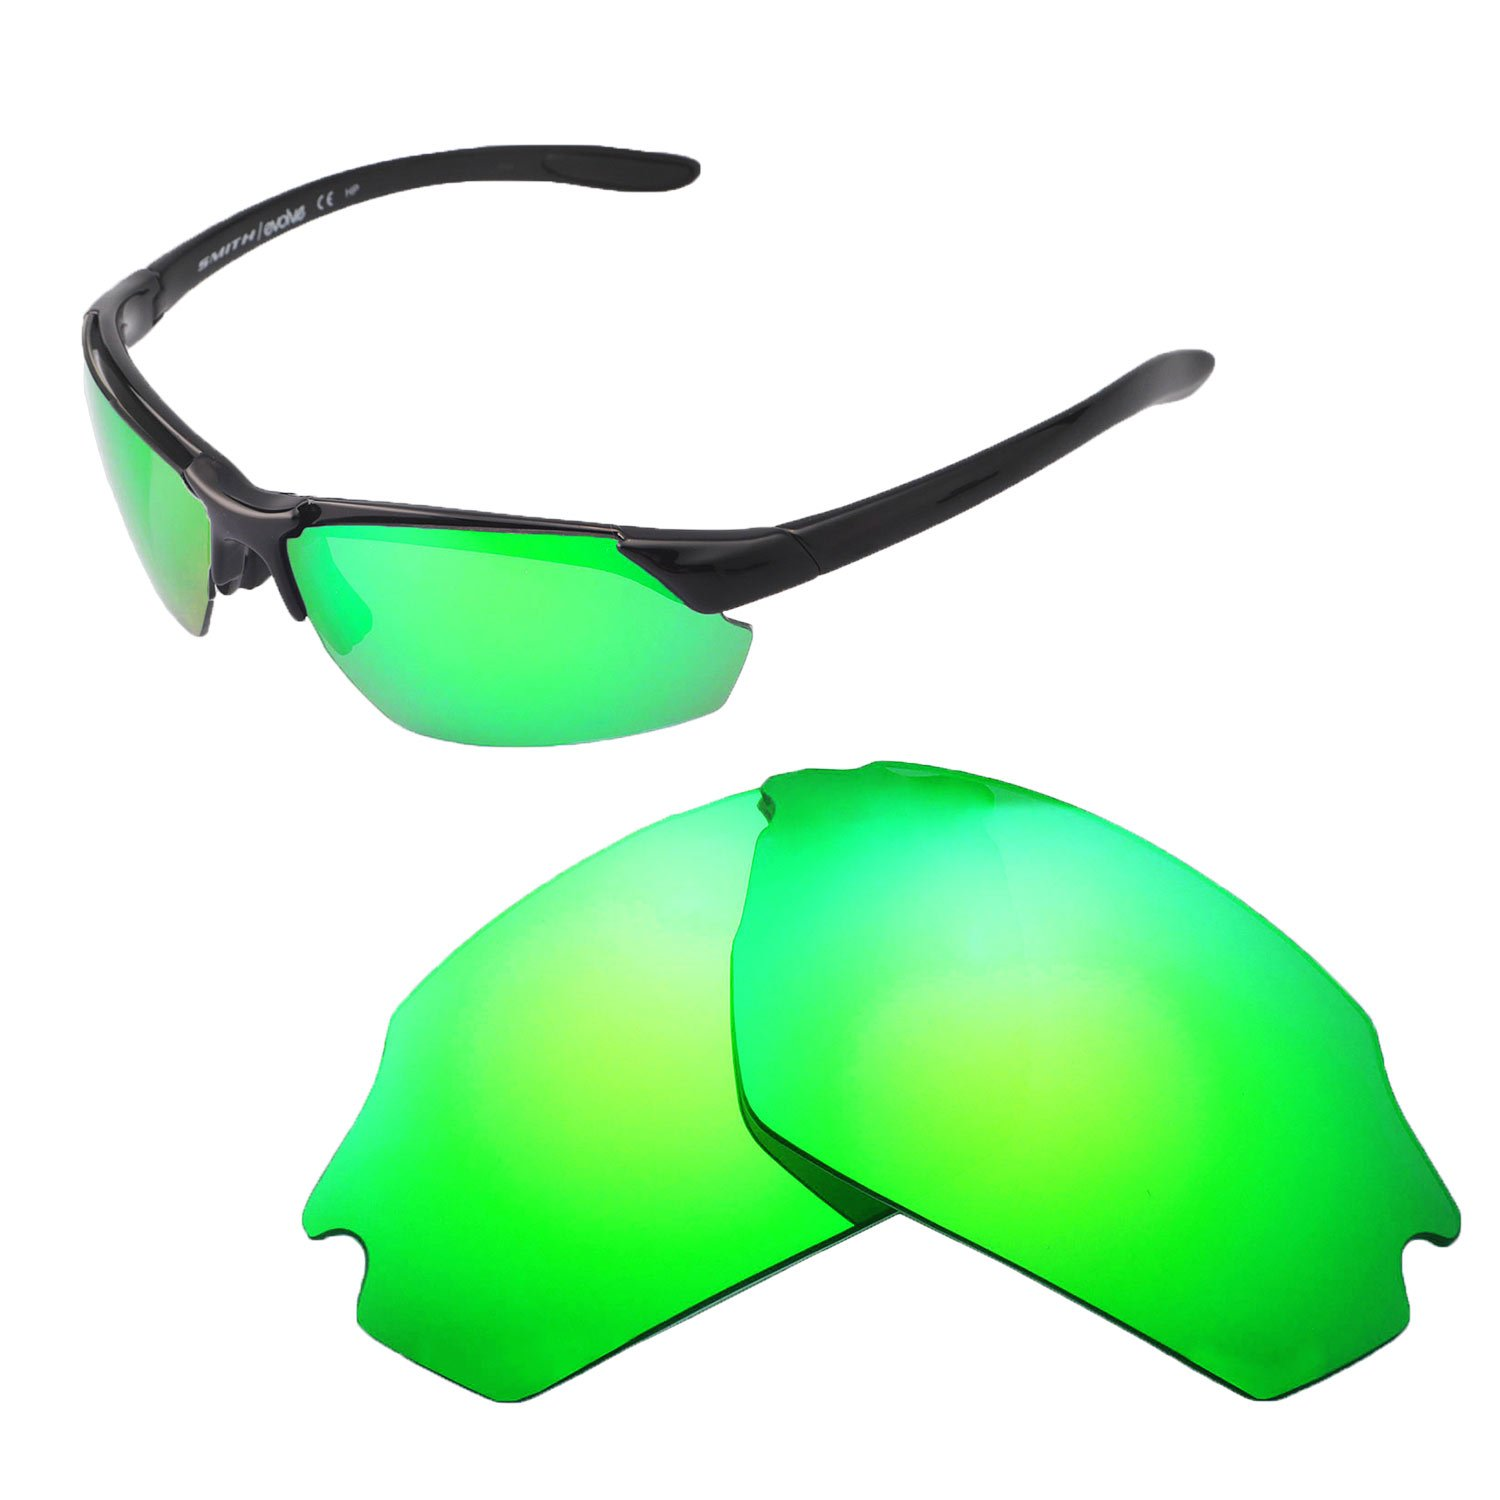 Walleva Replacement Lenses For Smith Parallel Max Sunglasses - Multiple Options available (Emerald - Polarized) by Walleva